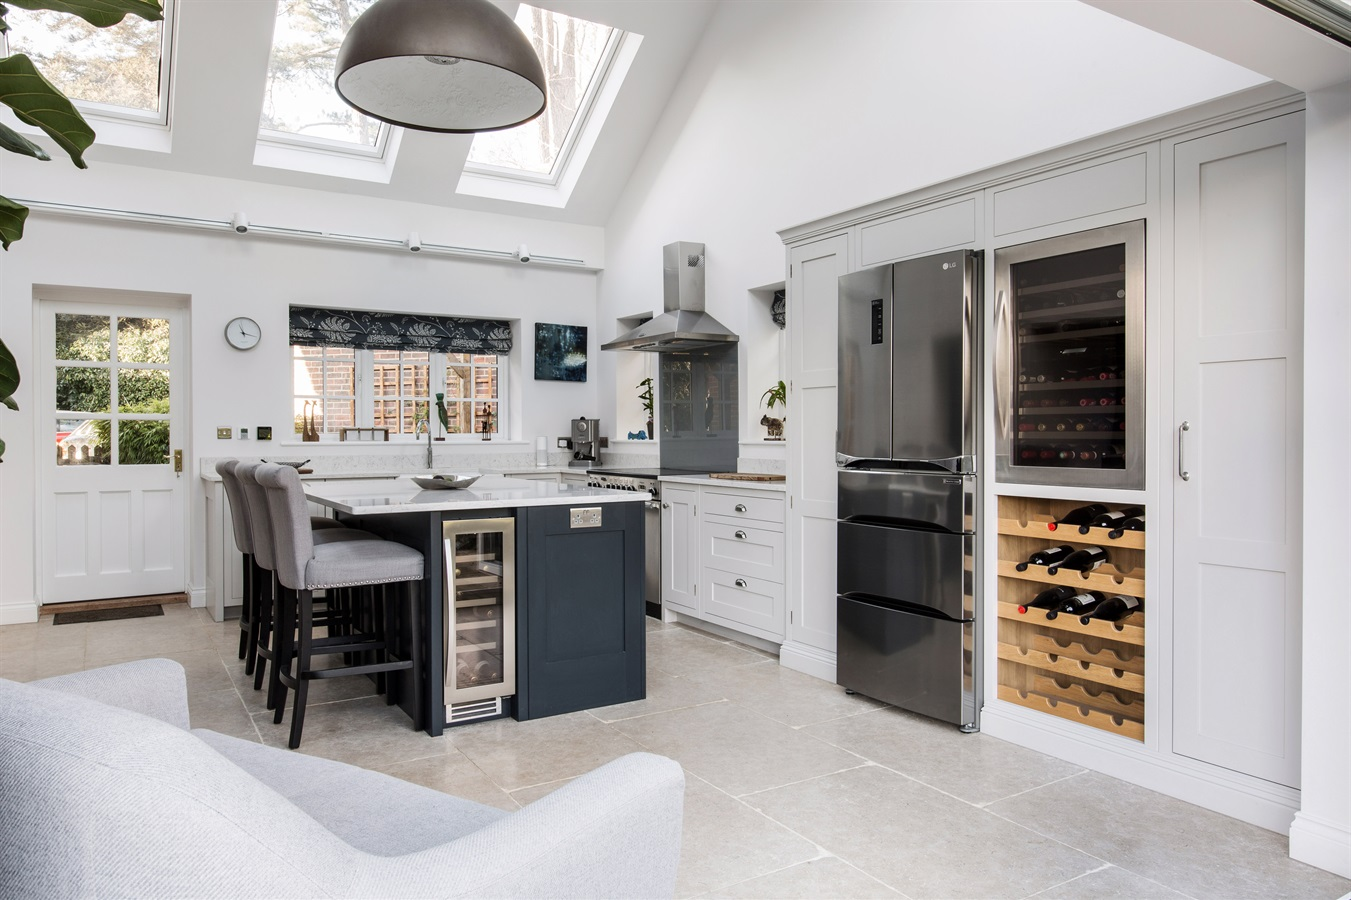 Burlanes Bespoke Classic Hoyden Kitchen - Burlanes design and handmake kitchens and interiors of the highest quality.